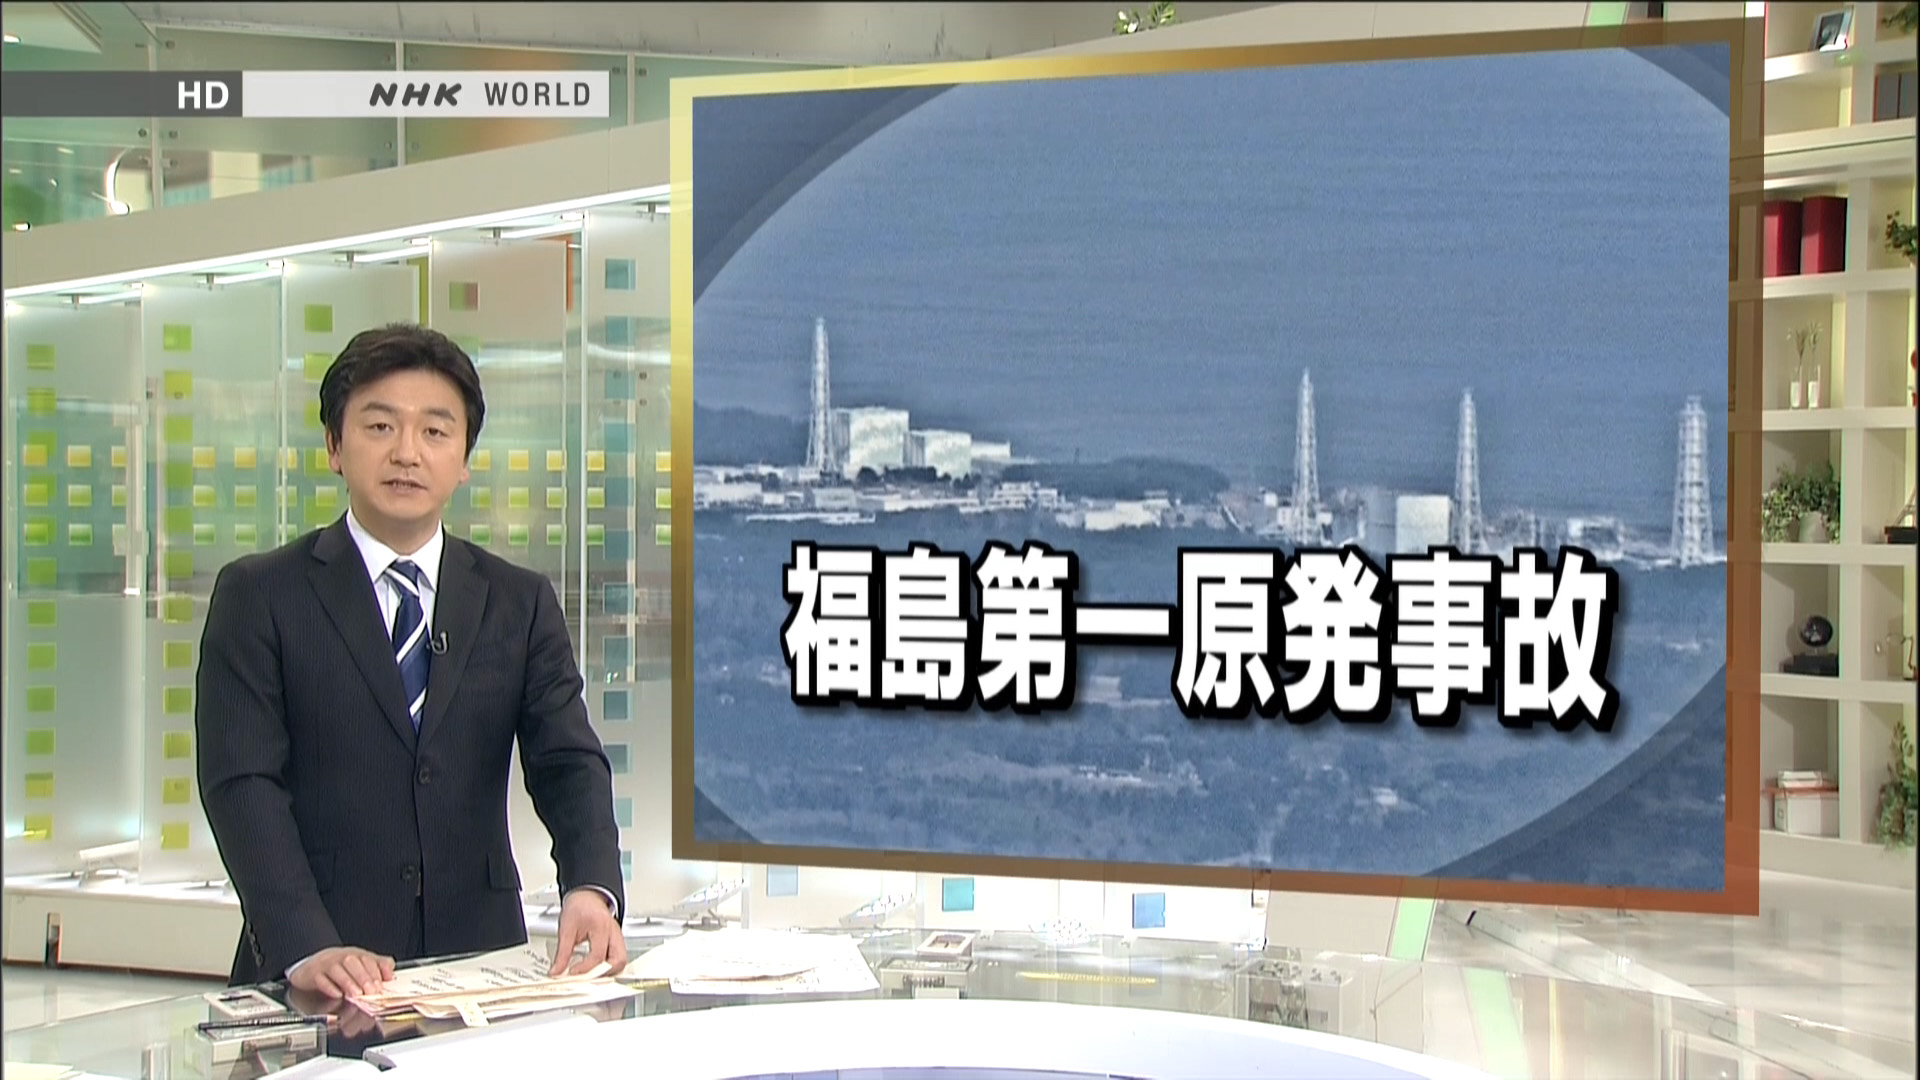 nhk-world-hd